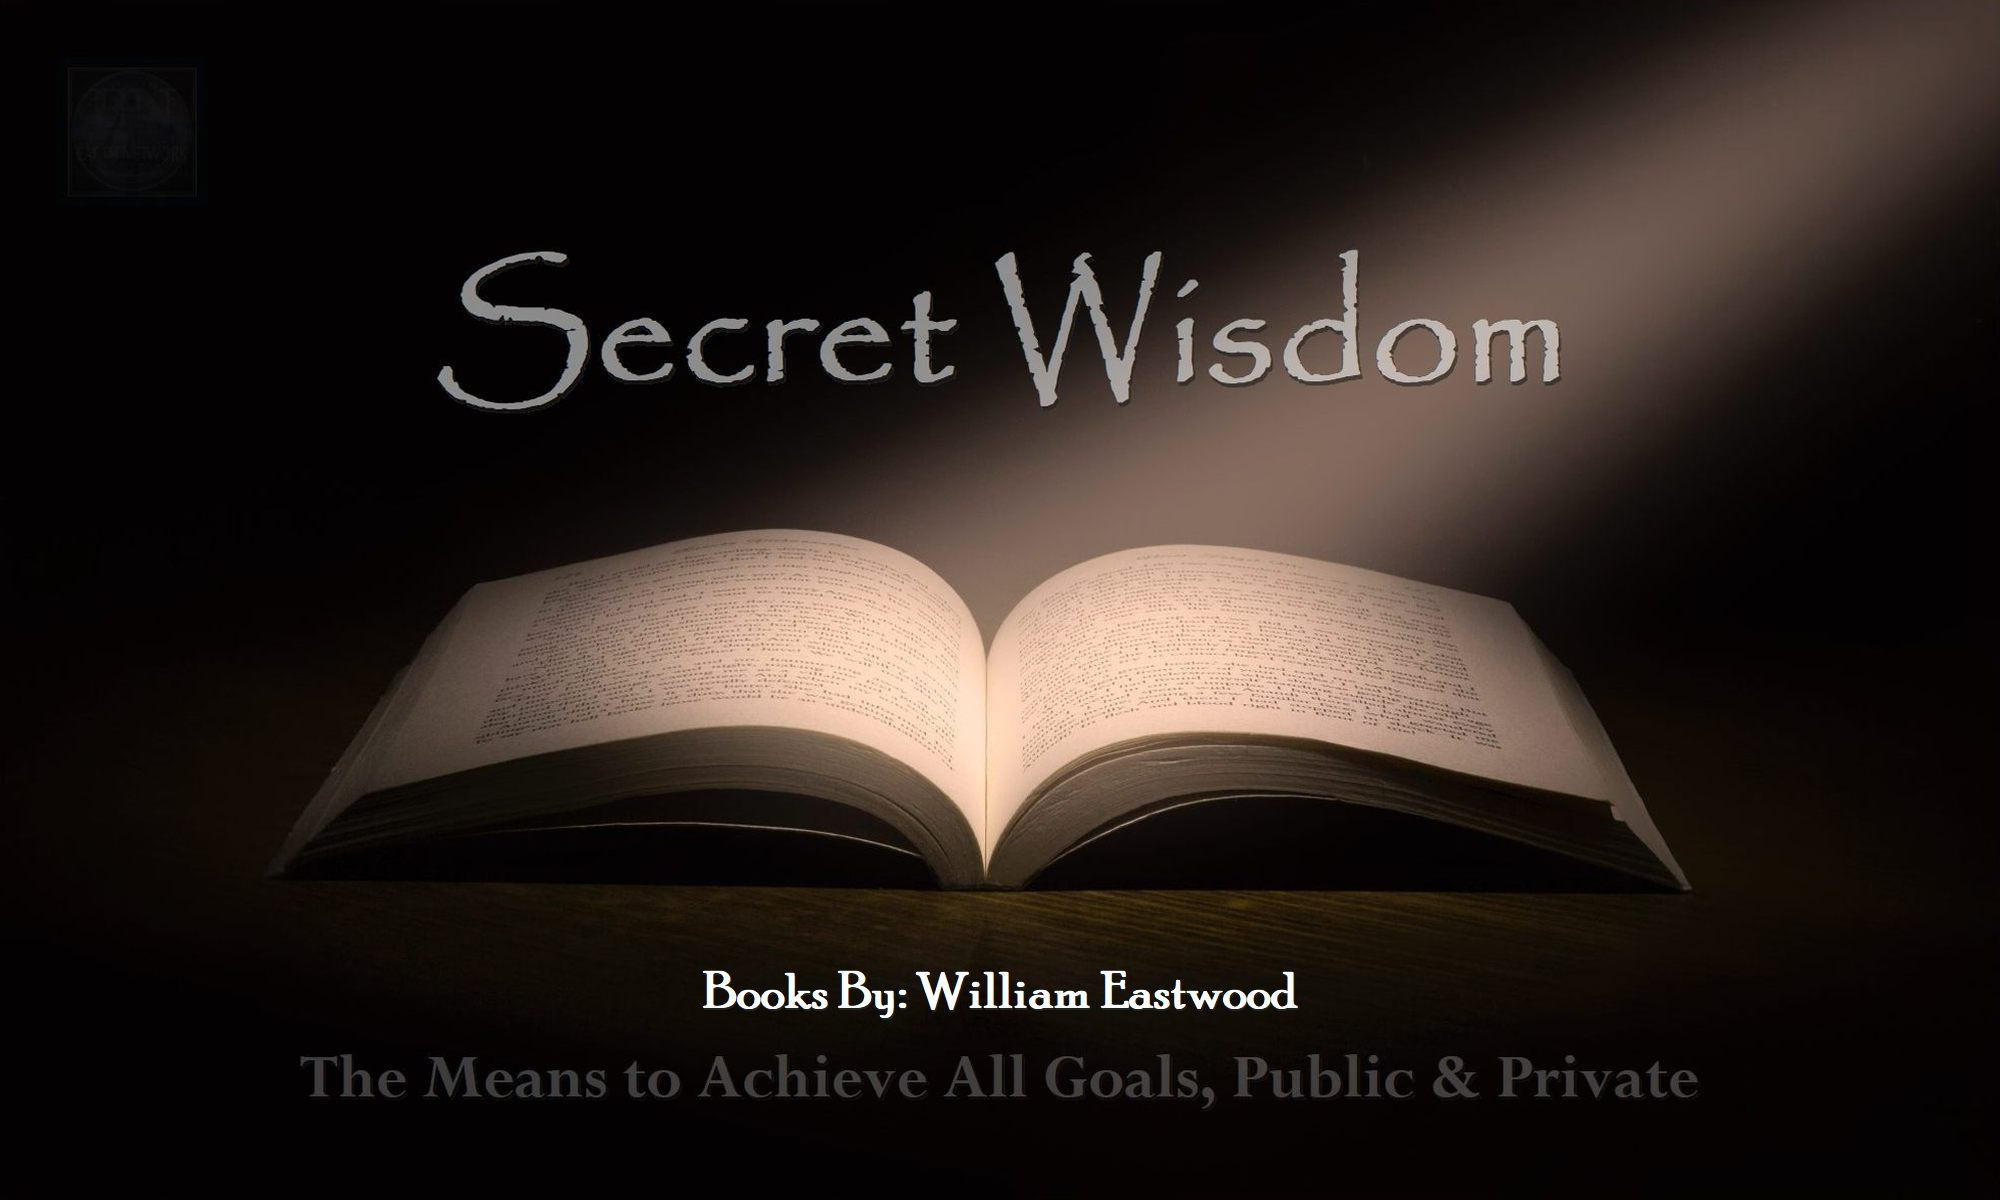 Book-depicts-secret-wisdom-the-answers-you-require-to-solve-problems-achieve-goals